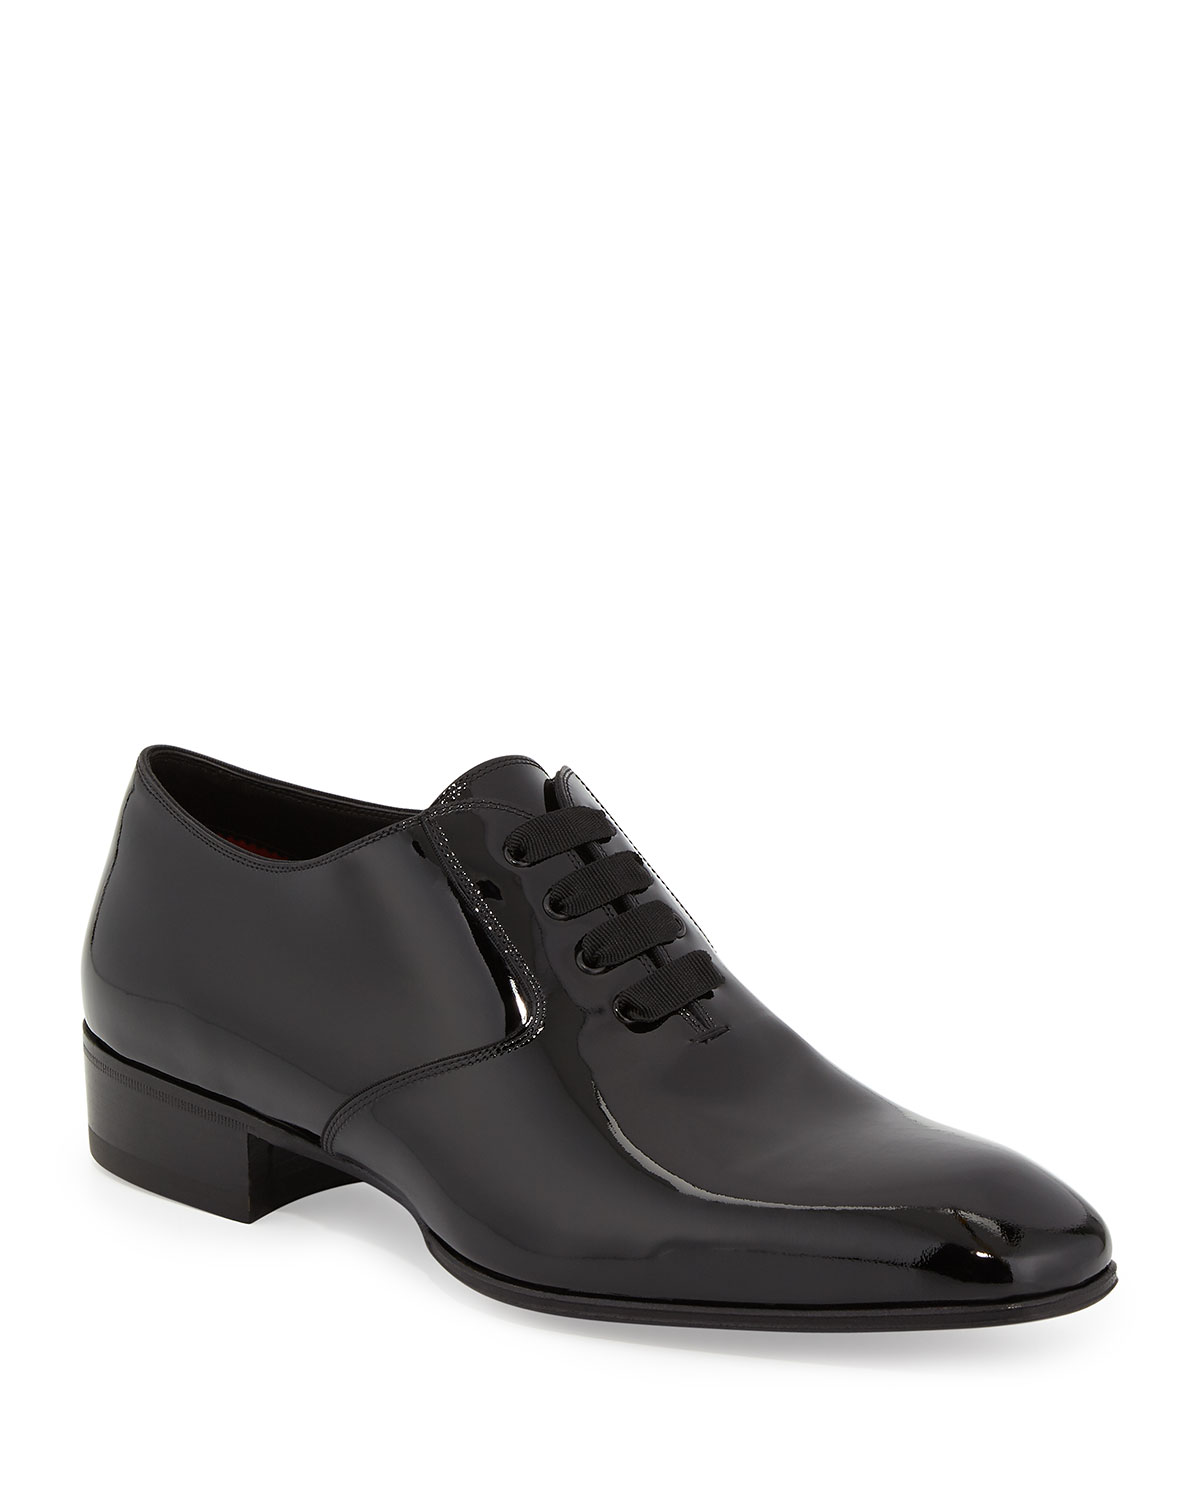 9dfe38b8652d Quick Look. TOM FORD · Gianni Patent Leather Lace-Up Shoe